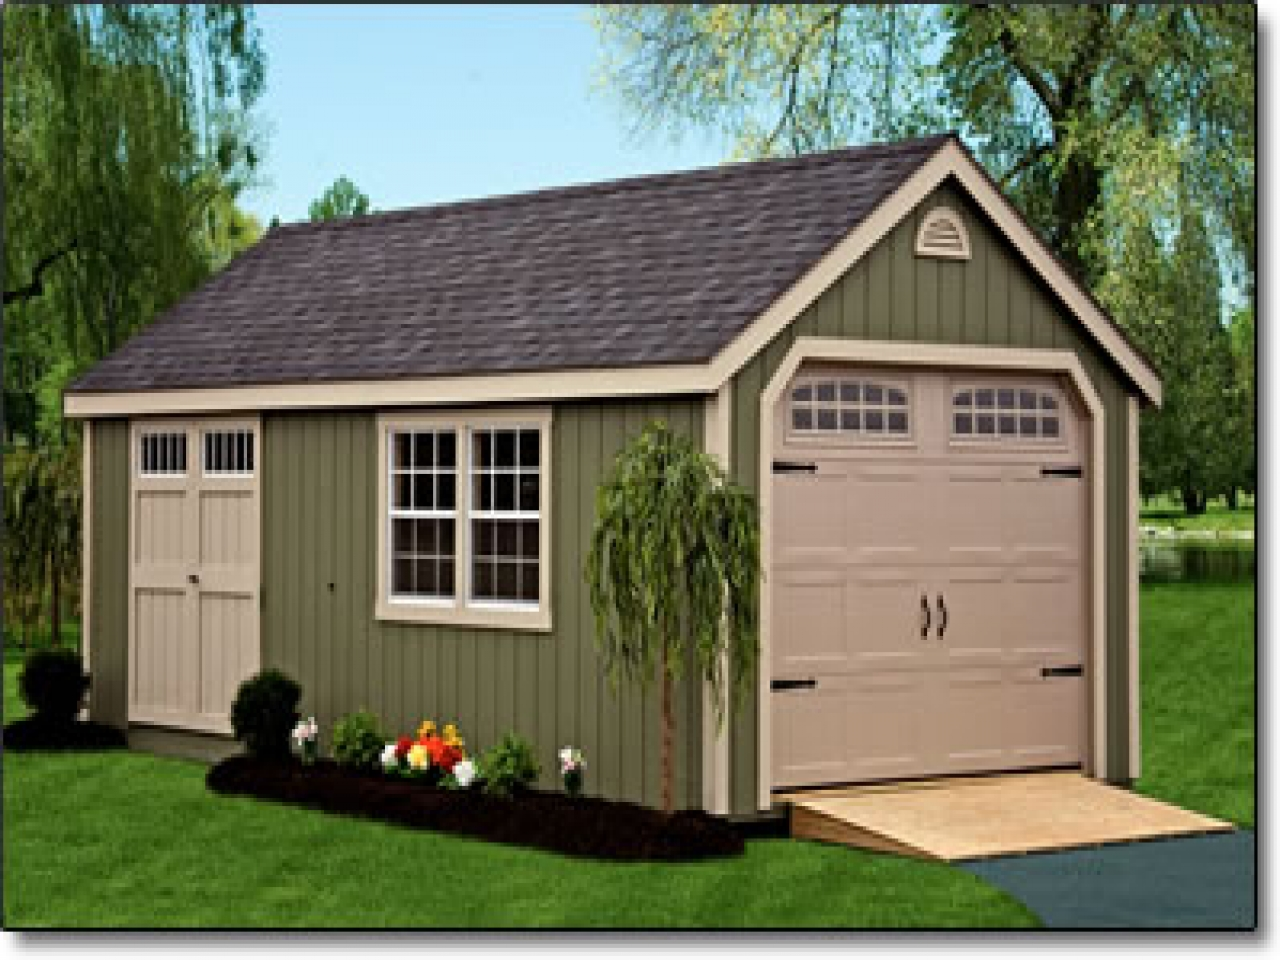 Pre built sheds dutch barn storage shed with cupola and for Outside buildings design